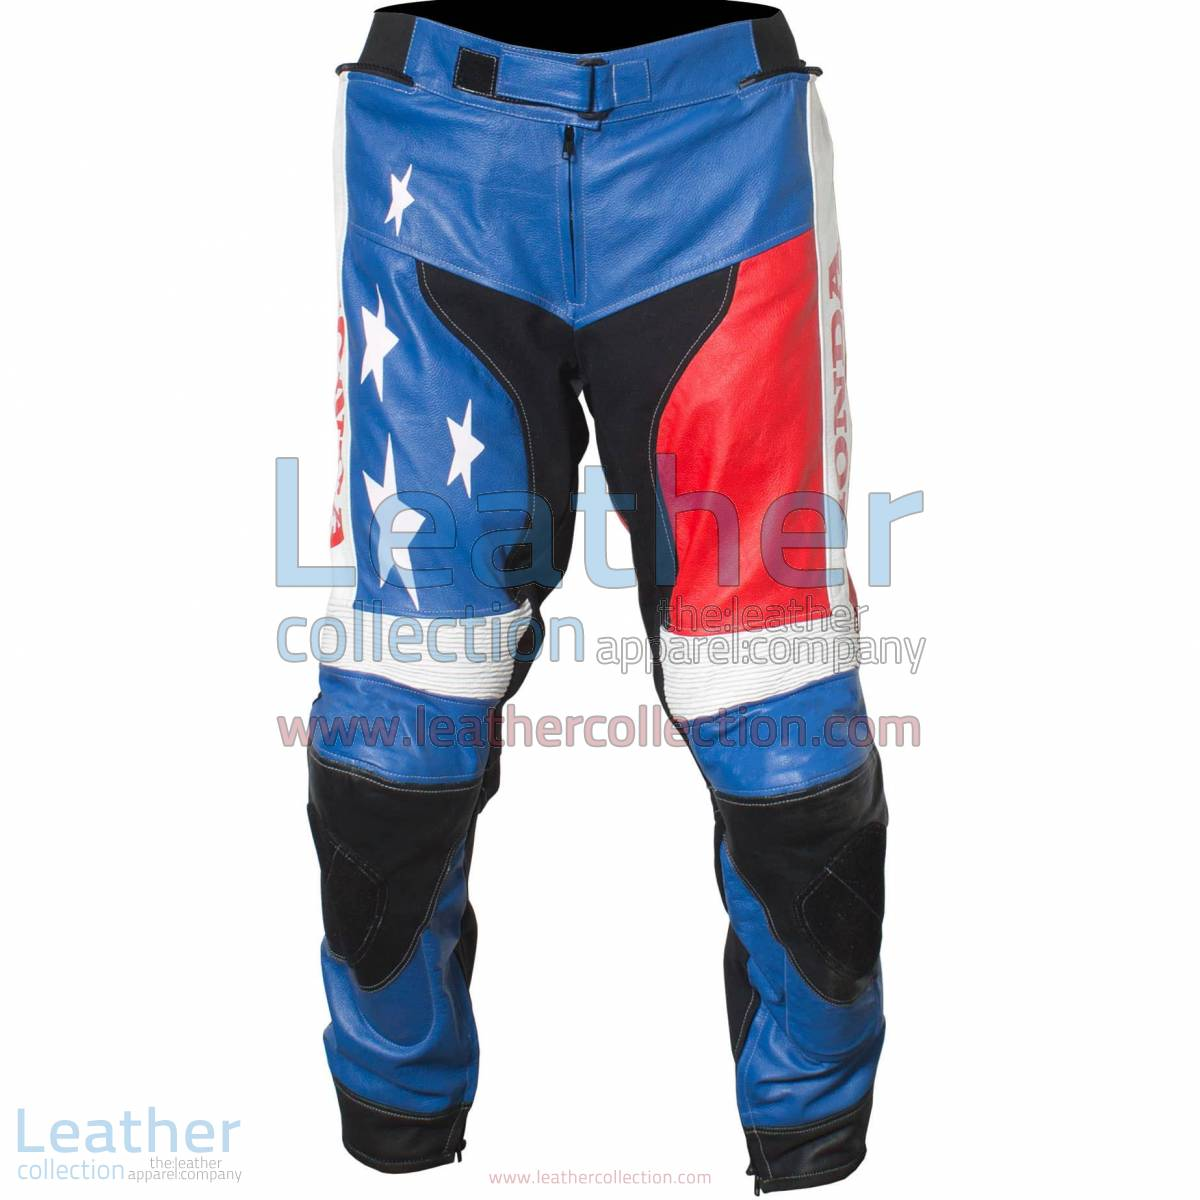 American Honda Moto2 Moriwaki MD600 Leather Pants | honda pants,leather pants